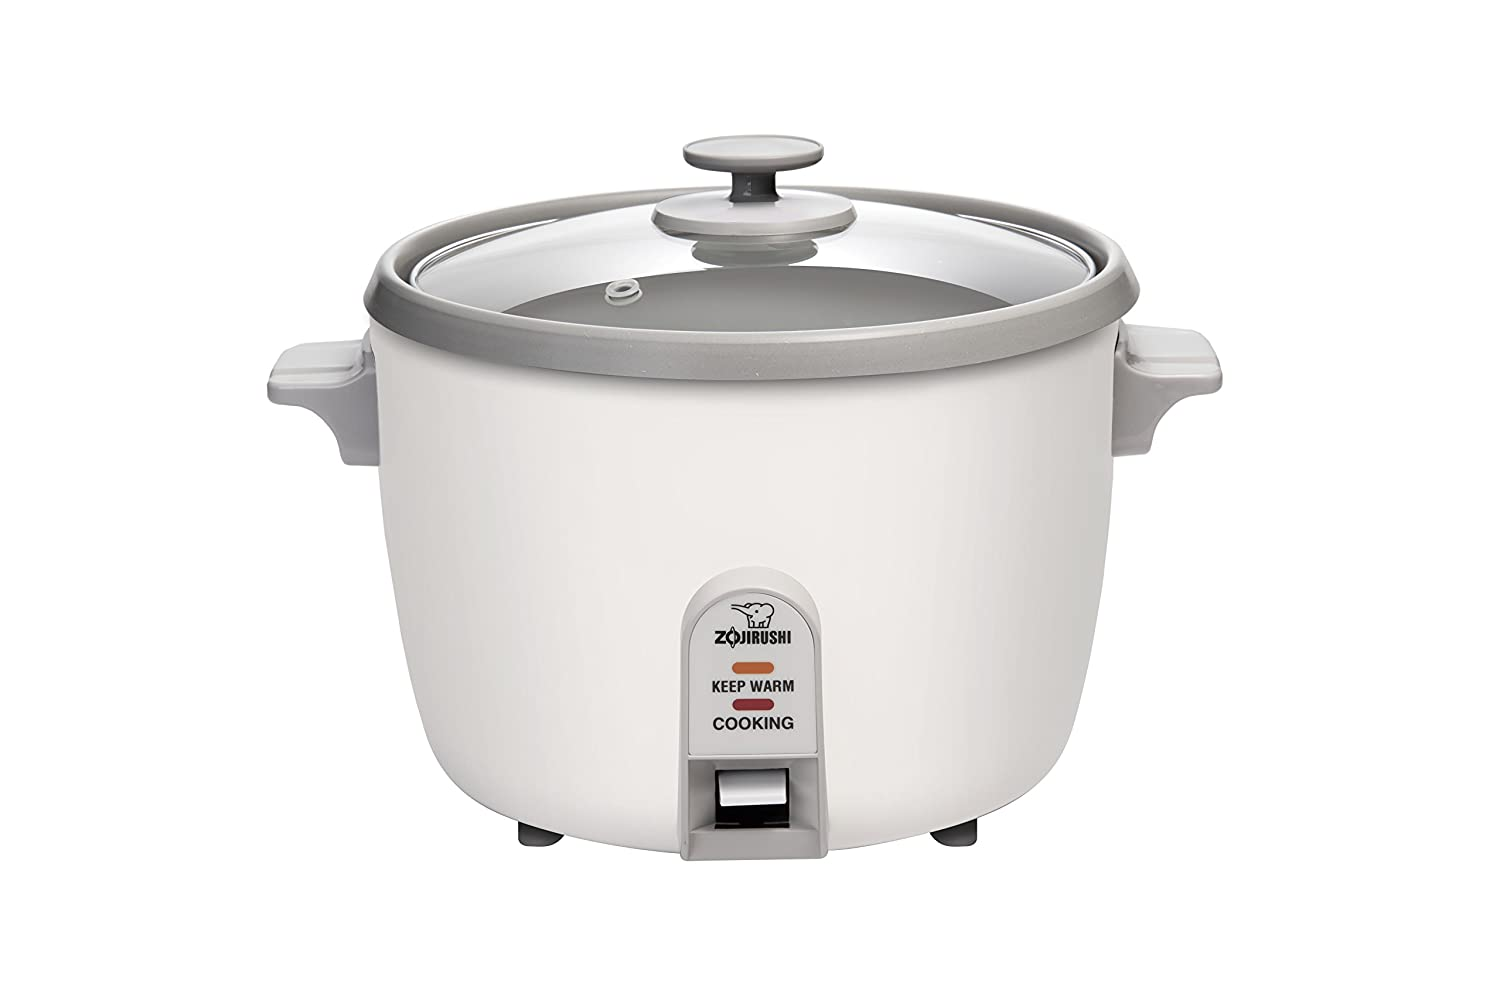 Zojirushi NHS-18 10-Cup (Uncooked) Rice Cooker